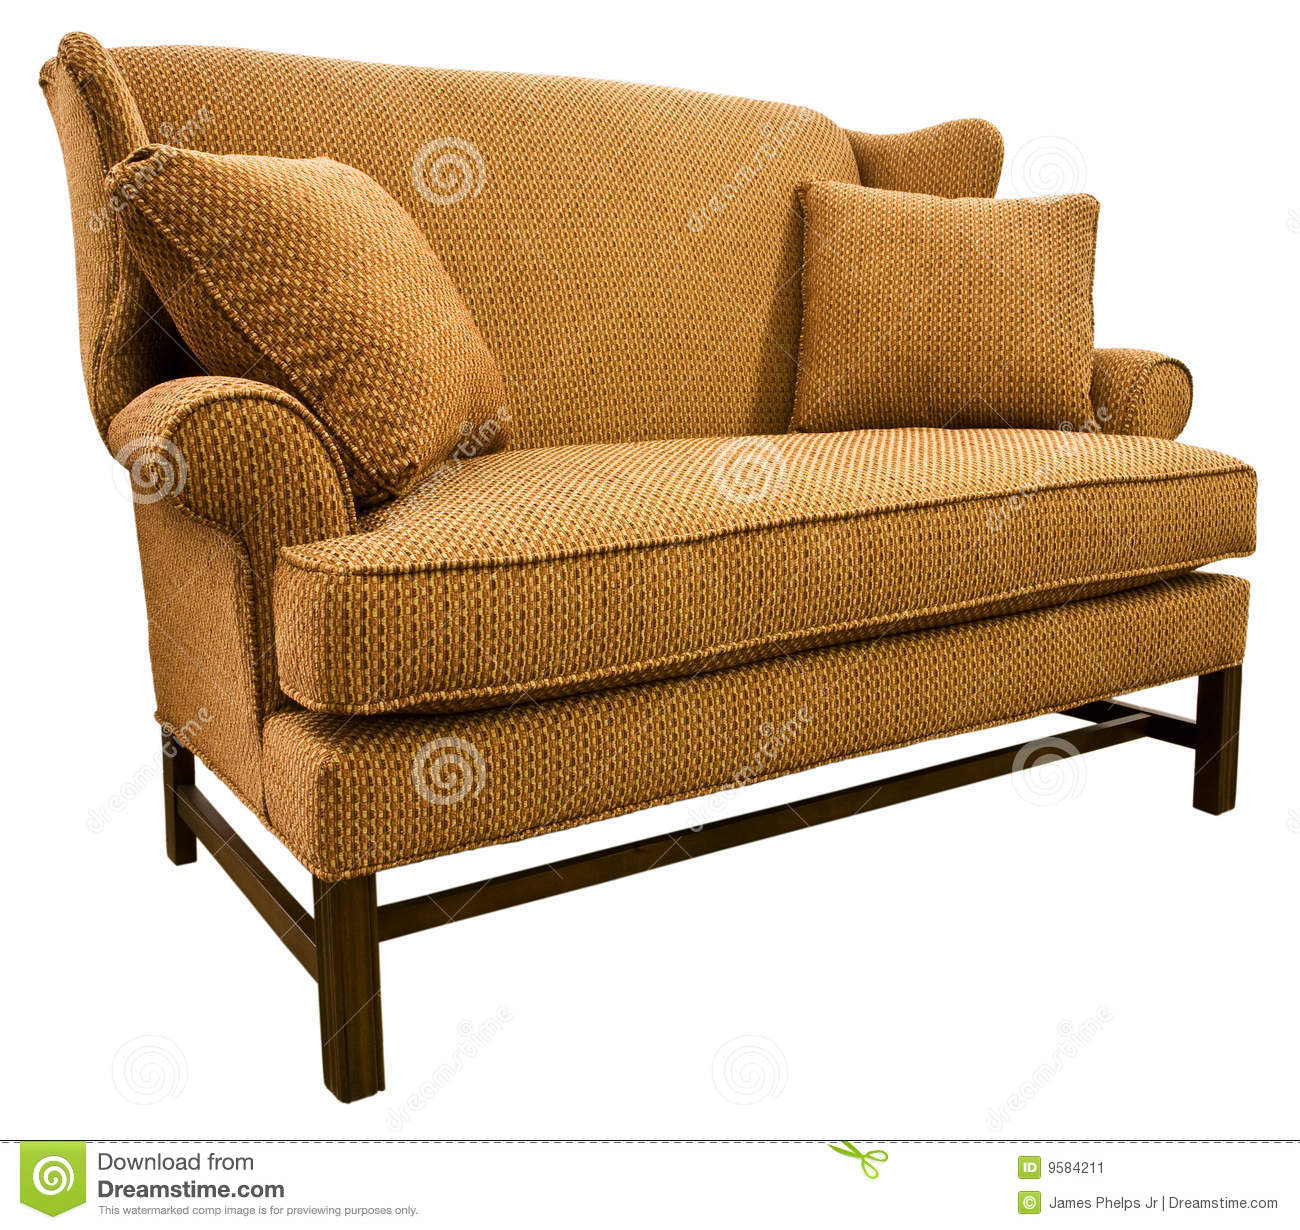 chippendale settee loveseat stock image  image  - cherry chippendale legs loveseat settee